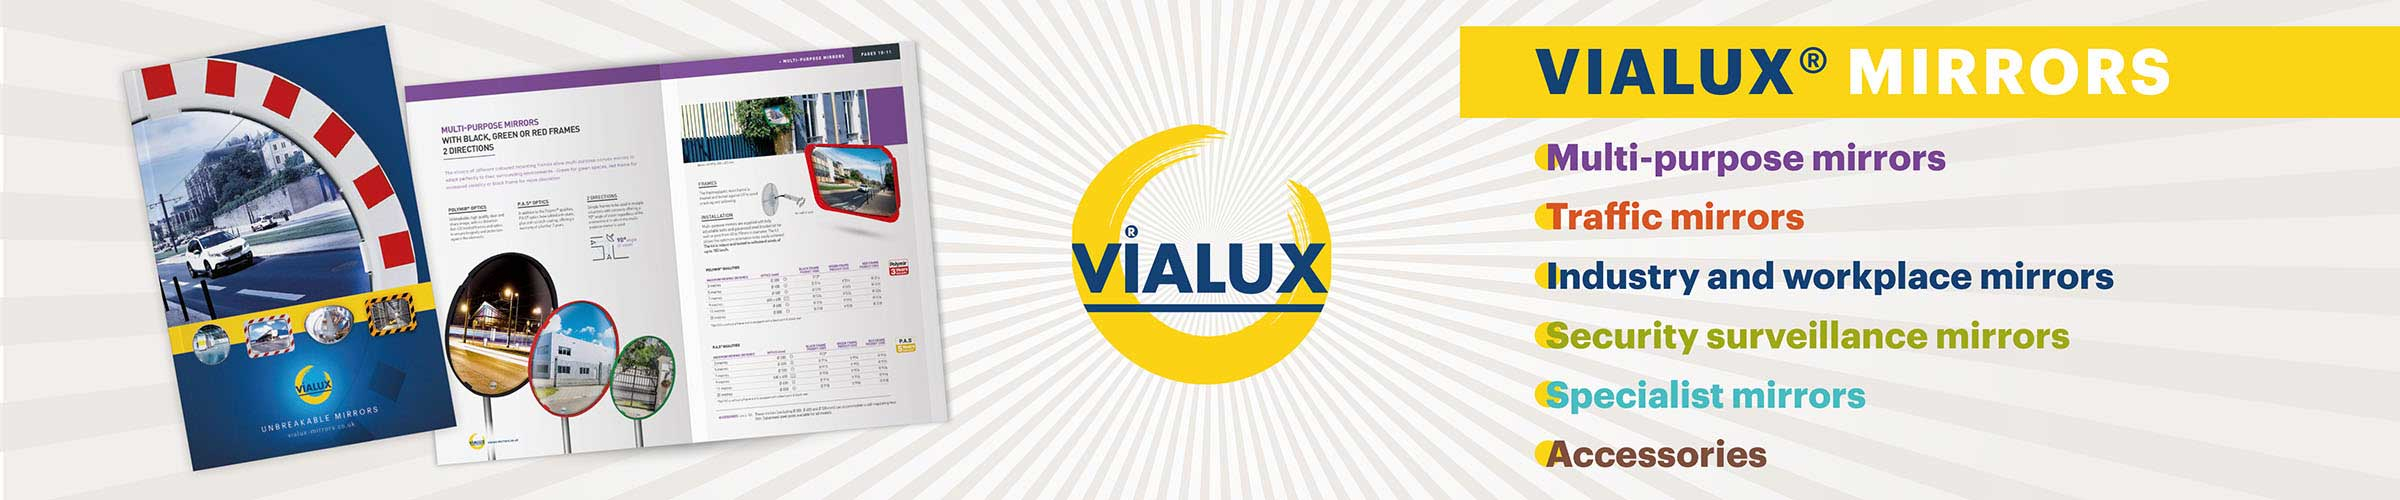 Vialux Safety Mirrors